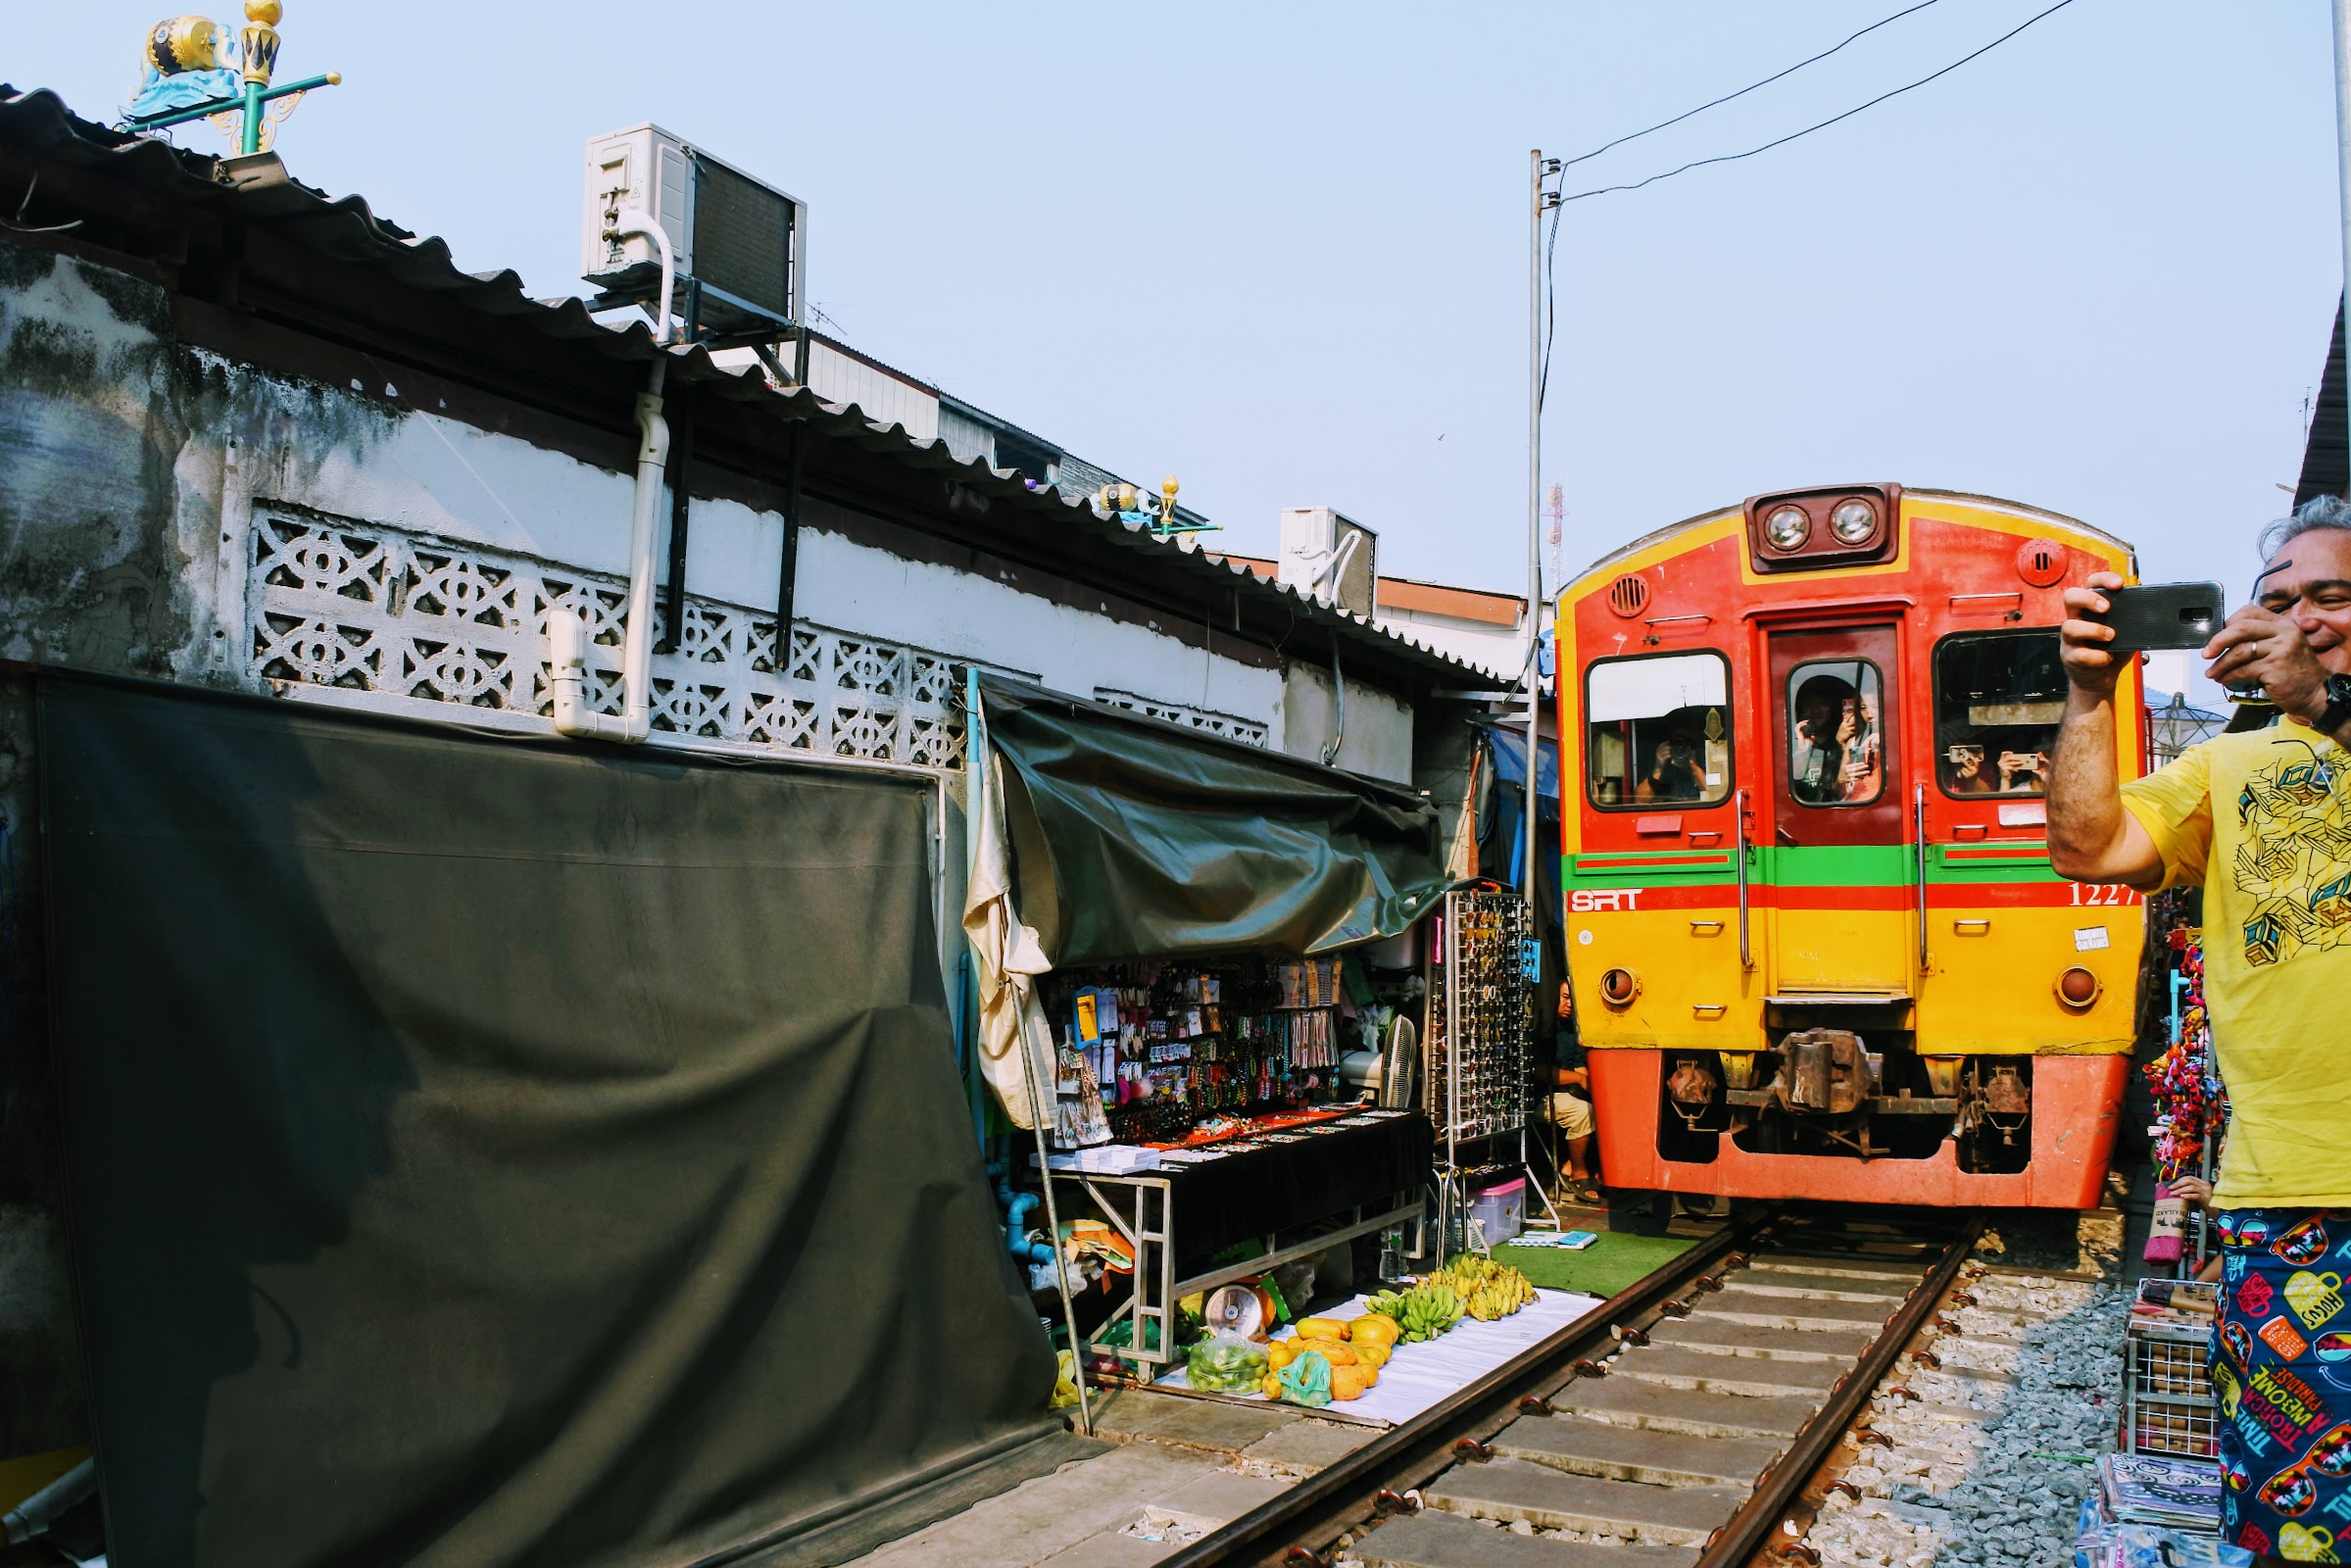 Surreal experience at Maeklong Railway Market